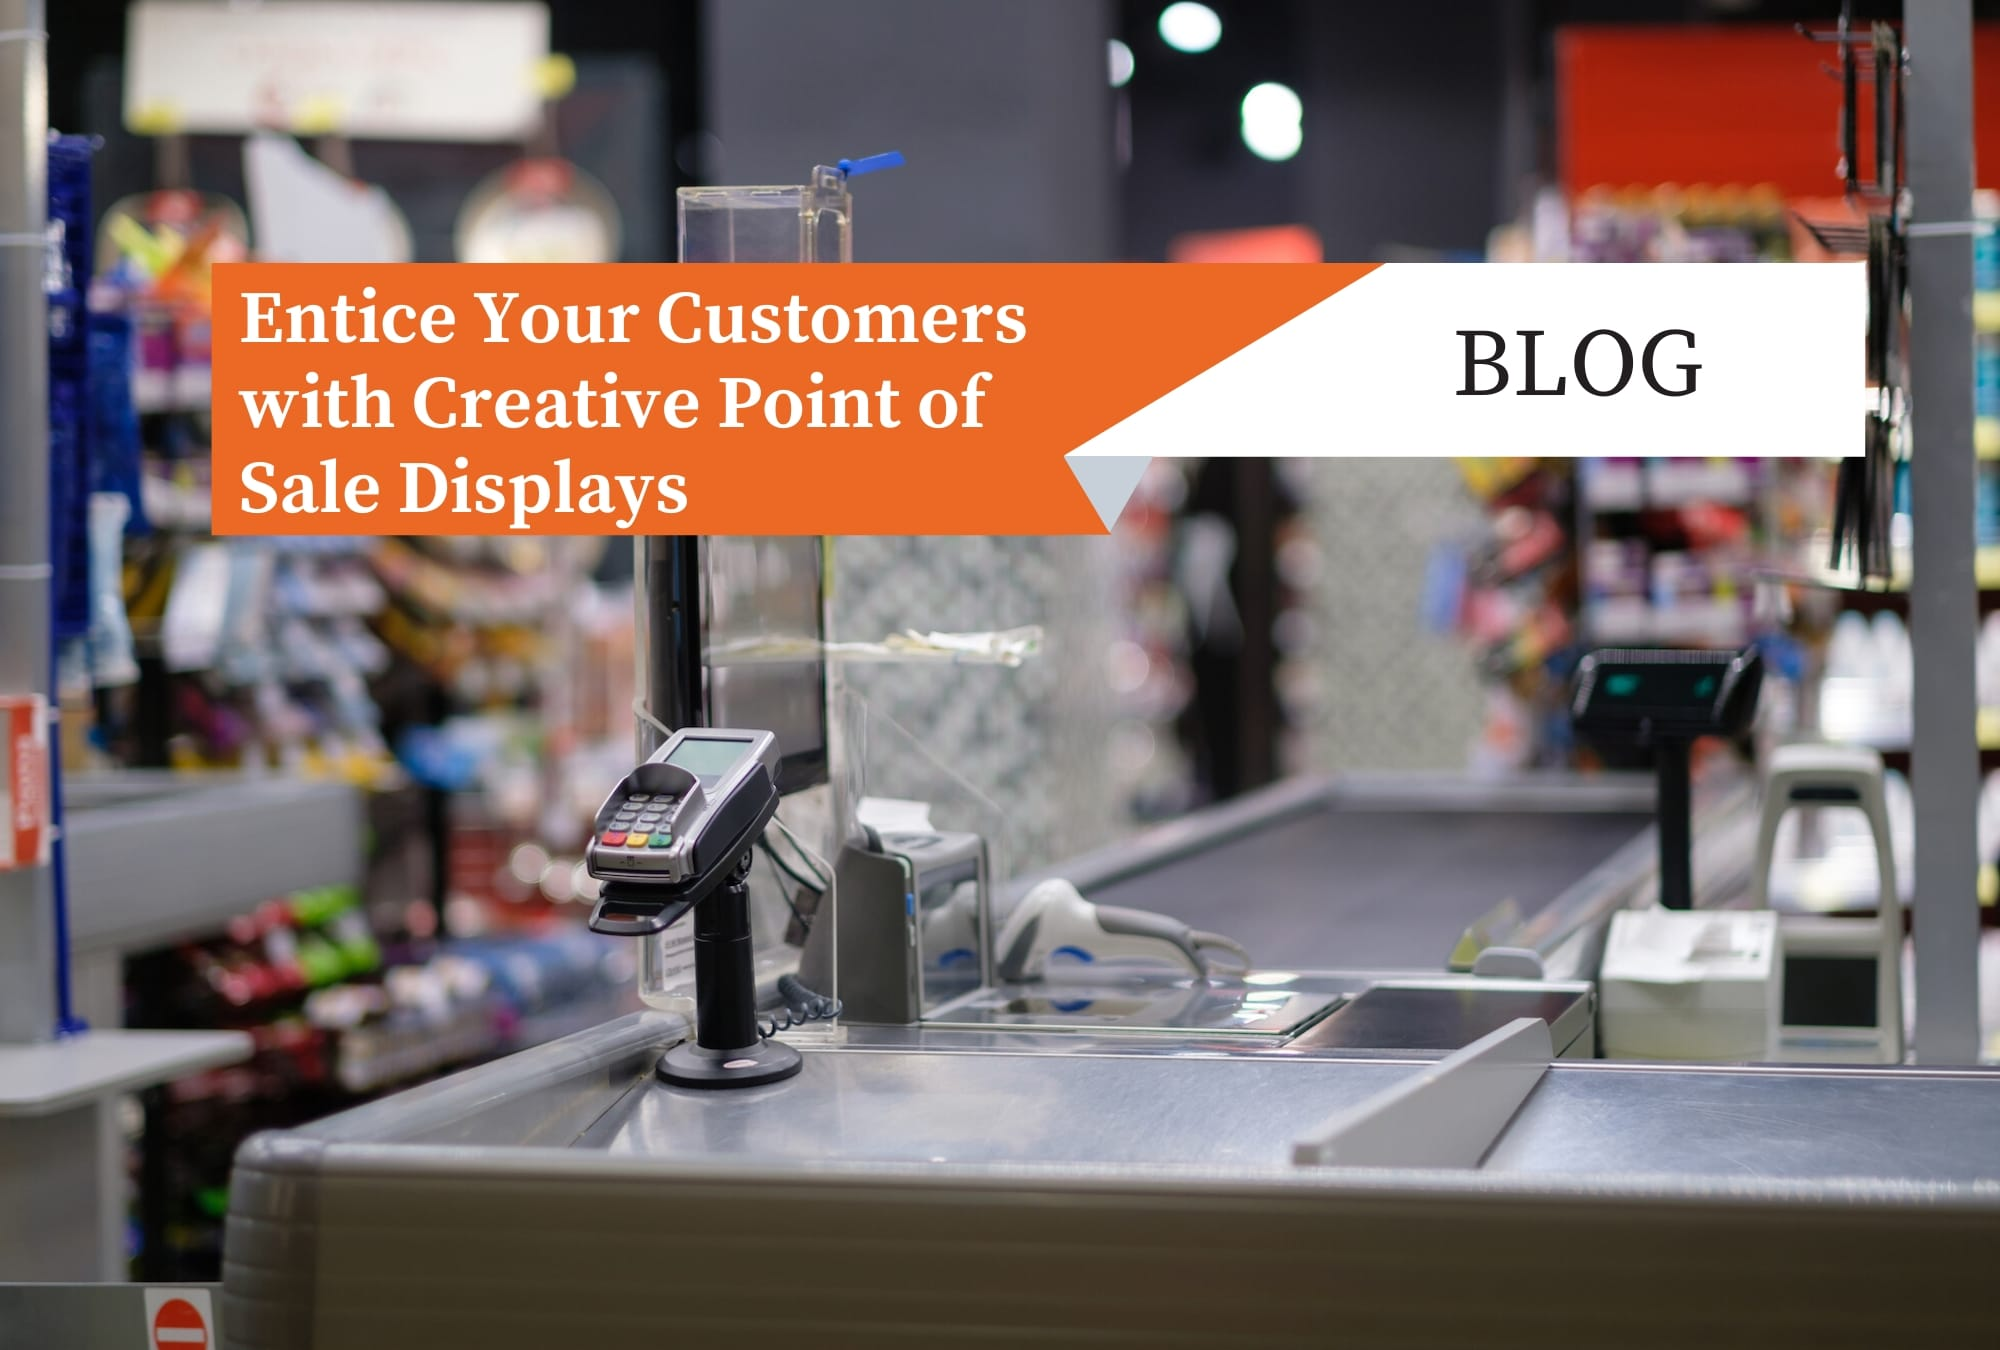 Entice Your Customers with Creative Point of Sale Displays